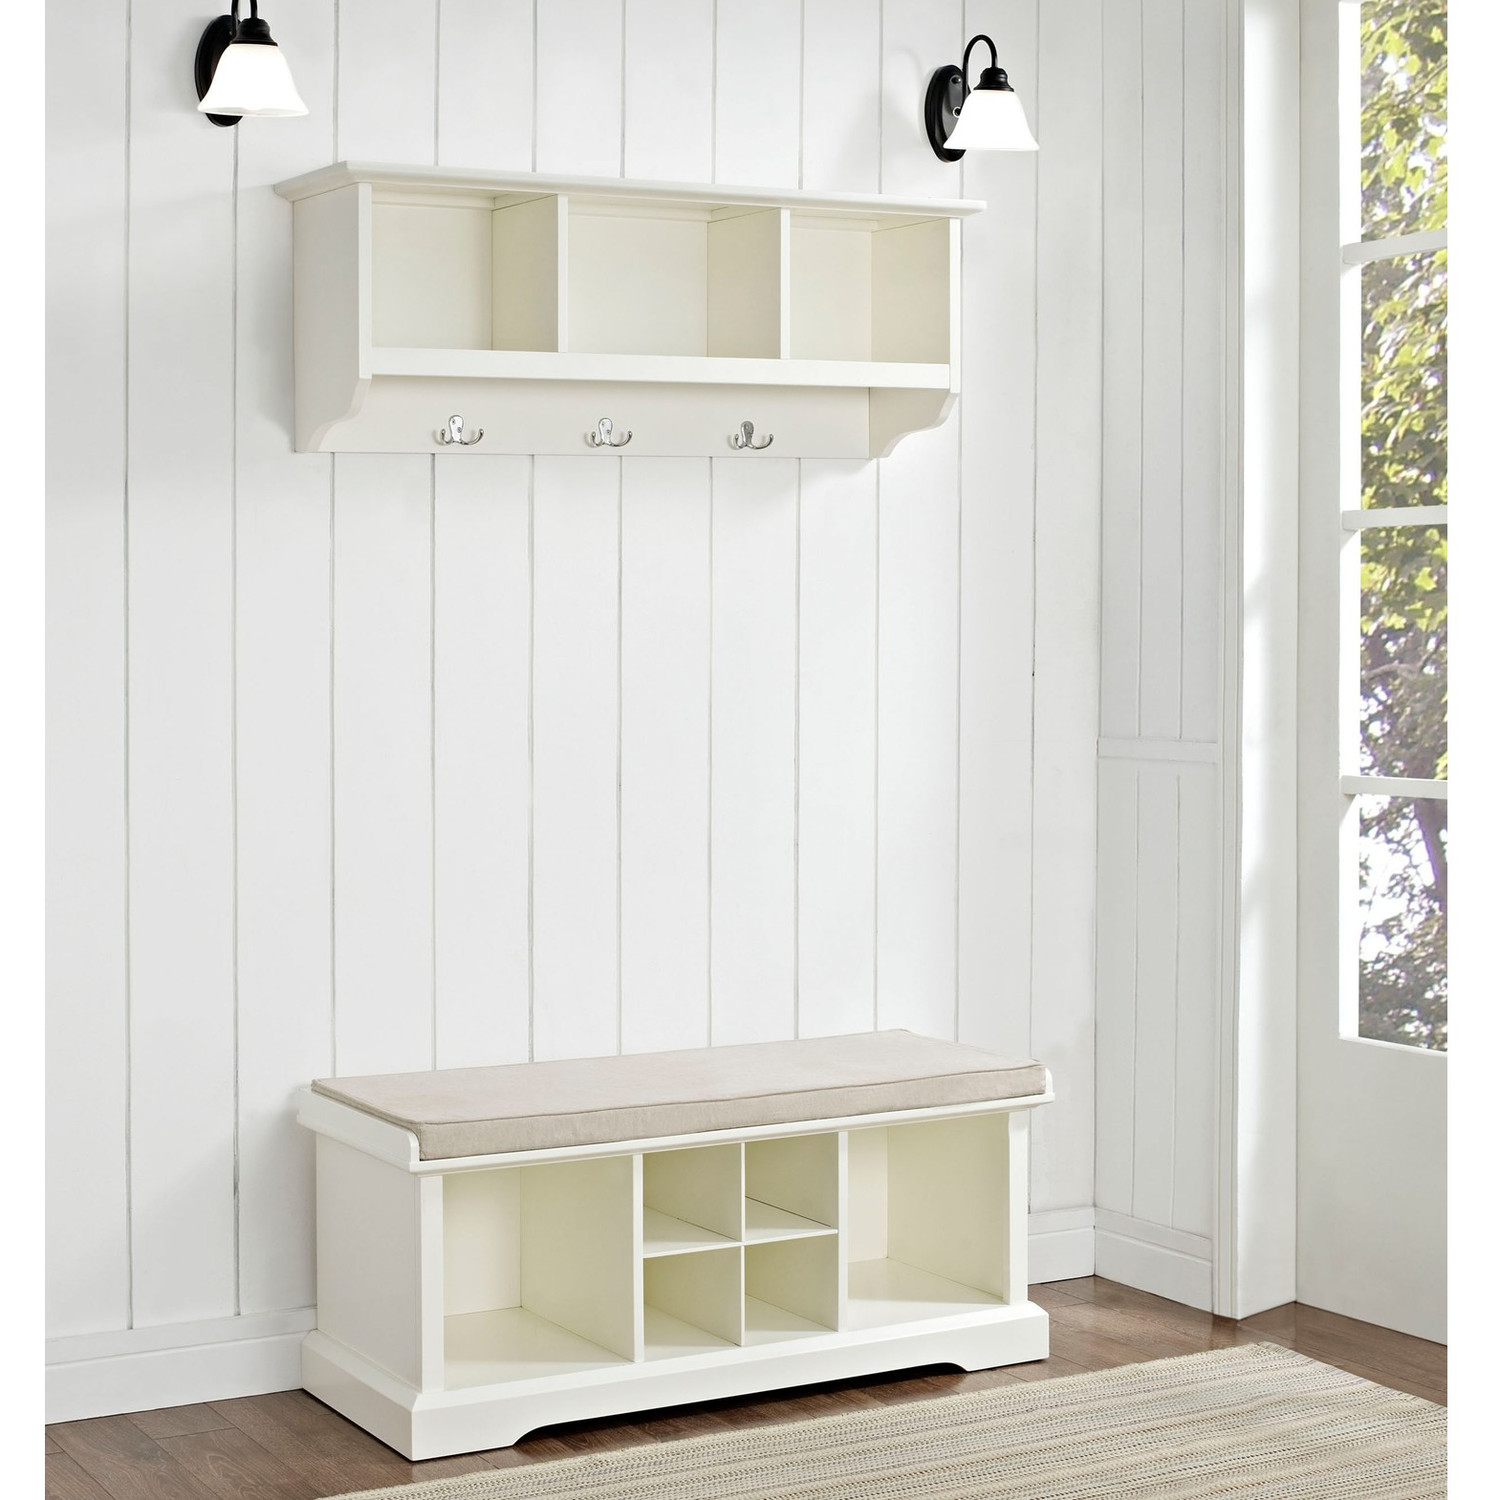 Entryway Bench and Storage Shelf with Hooks | Entryway Storage Bench with Coat Rack | Bench with Coat Hooks